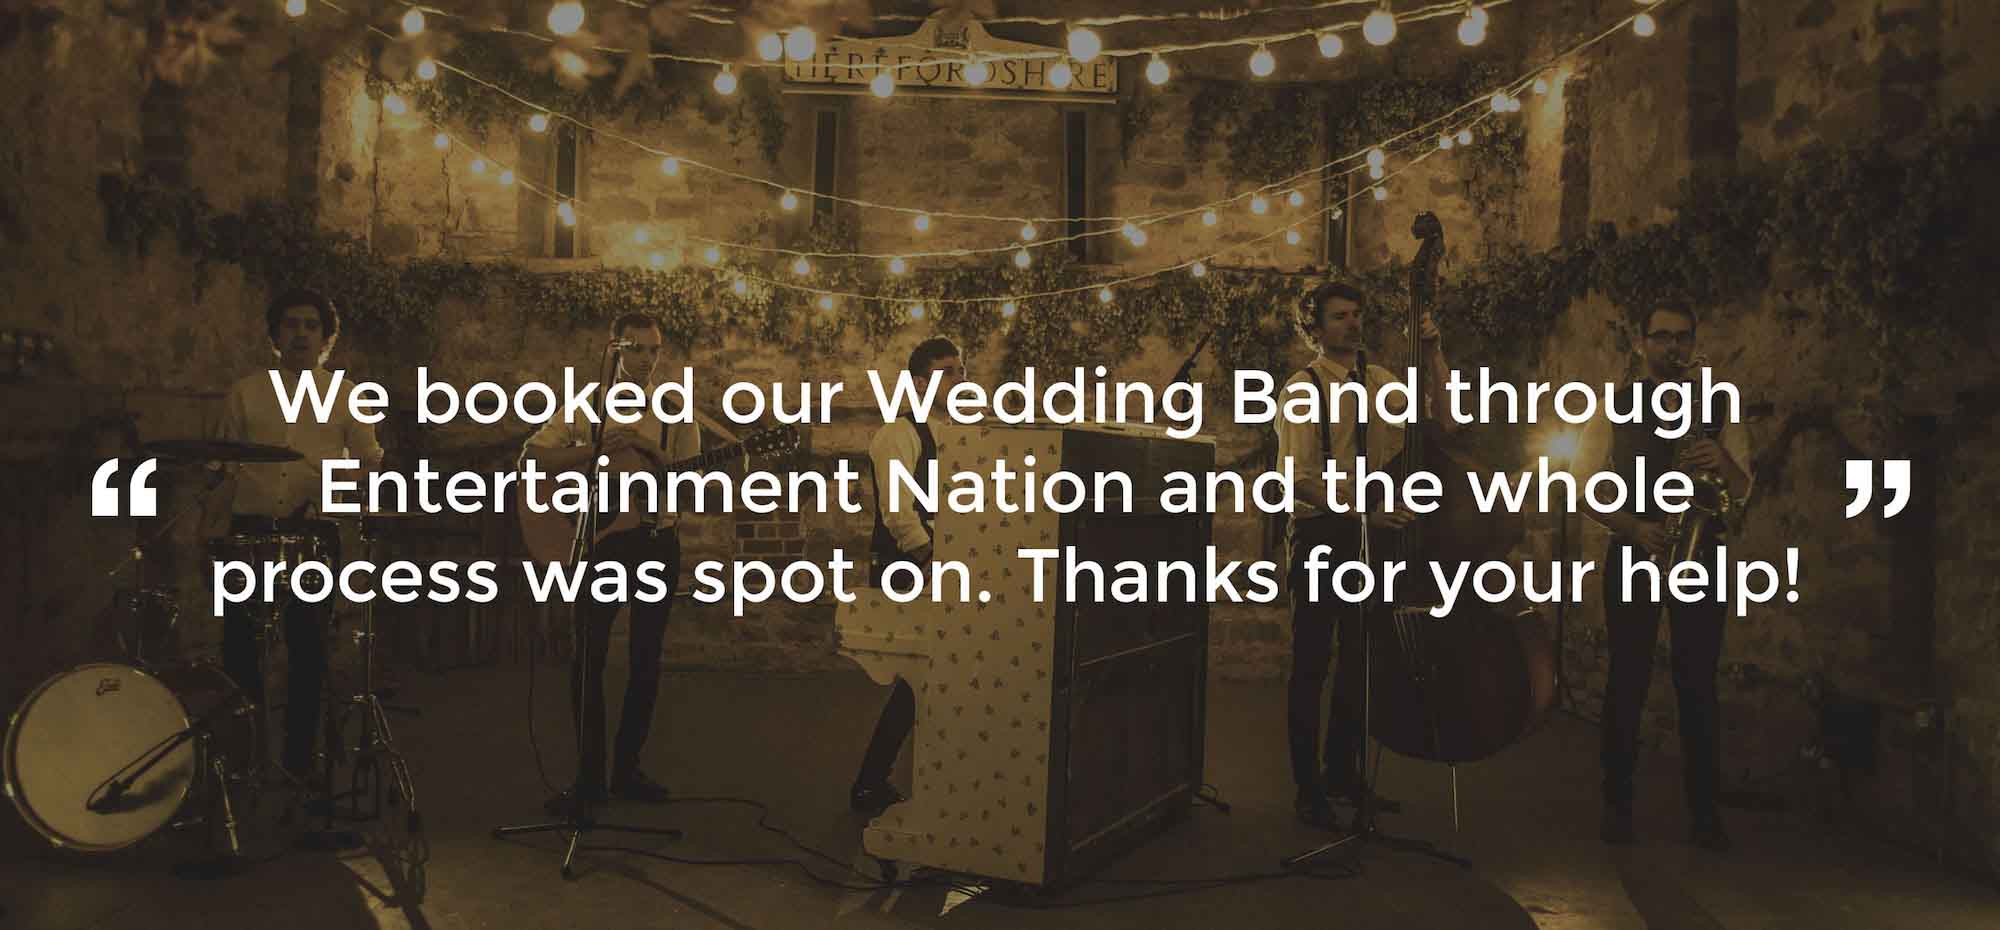 Client Review of a Wedding Band Greater London